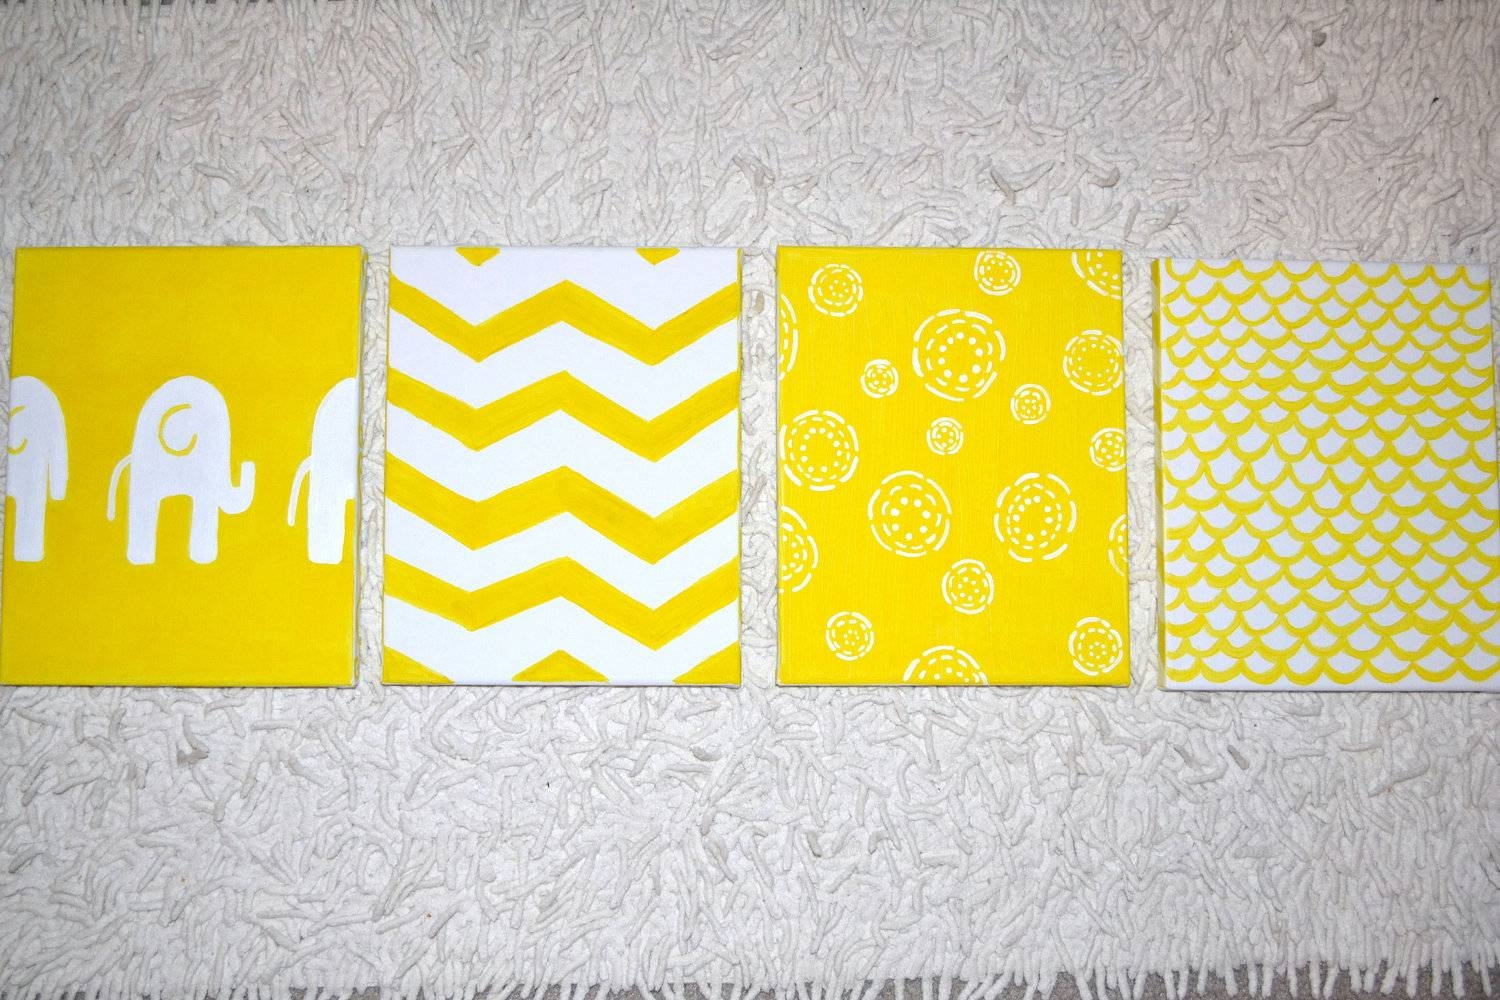 Grey And Yellow Wall Decor. Cool Yellow Grey Geometric Print Intended For Most Recent Yellow And Grey Wall Art (Gallery 20 of 25)